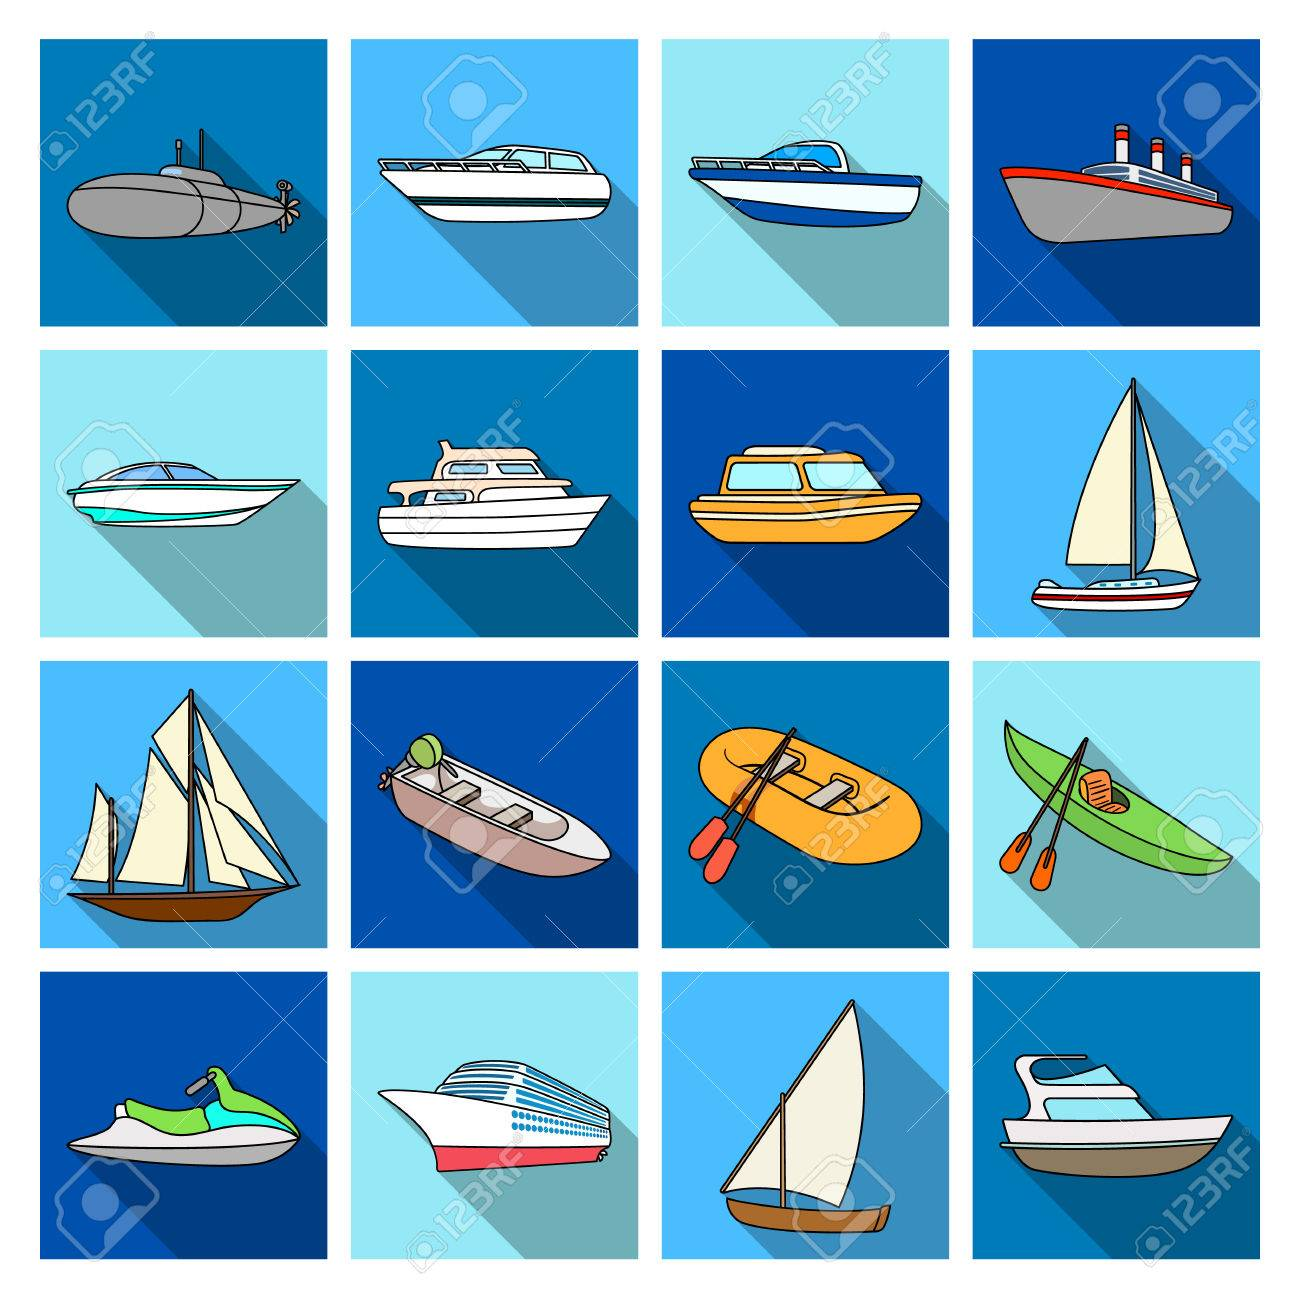 Yacht, boat, liner, types of ship and water transport  Ship and